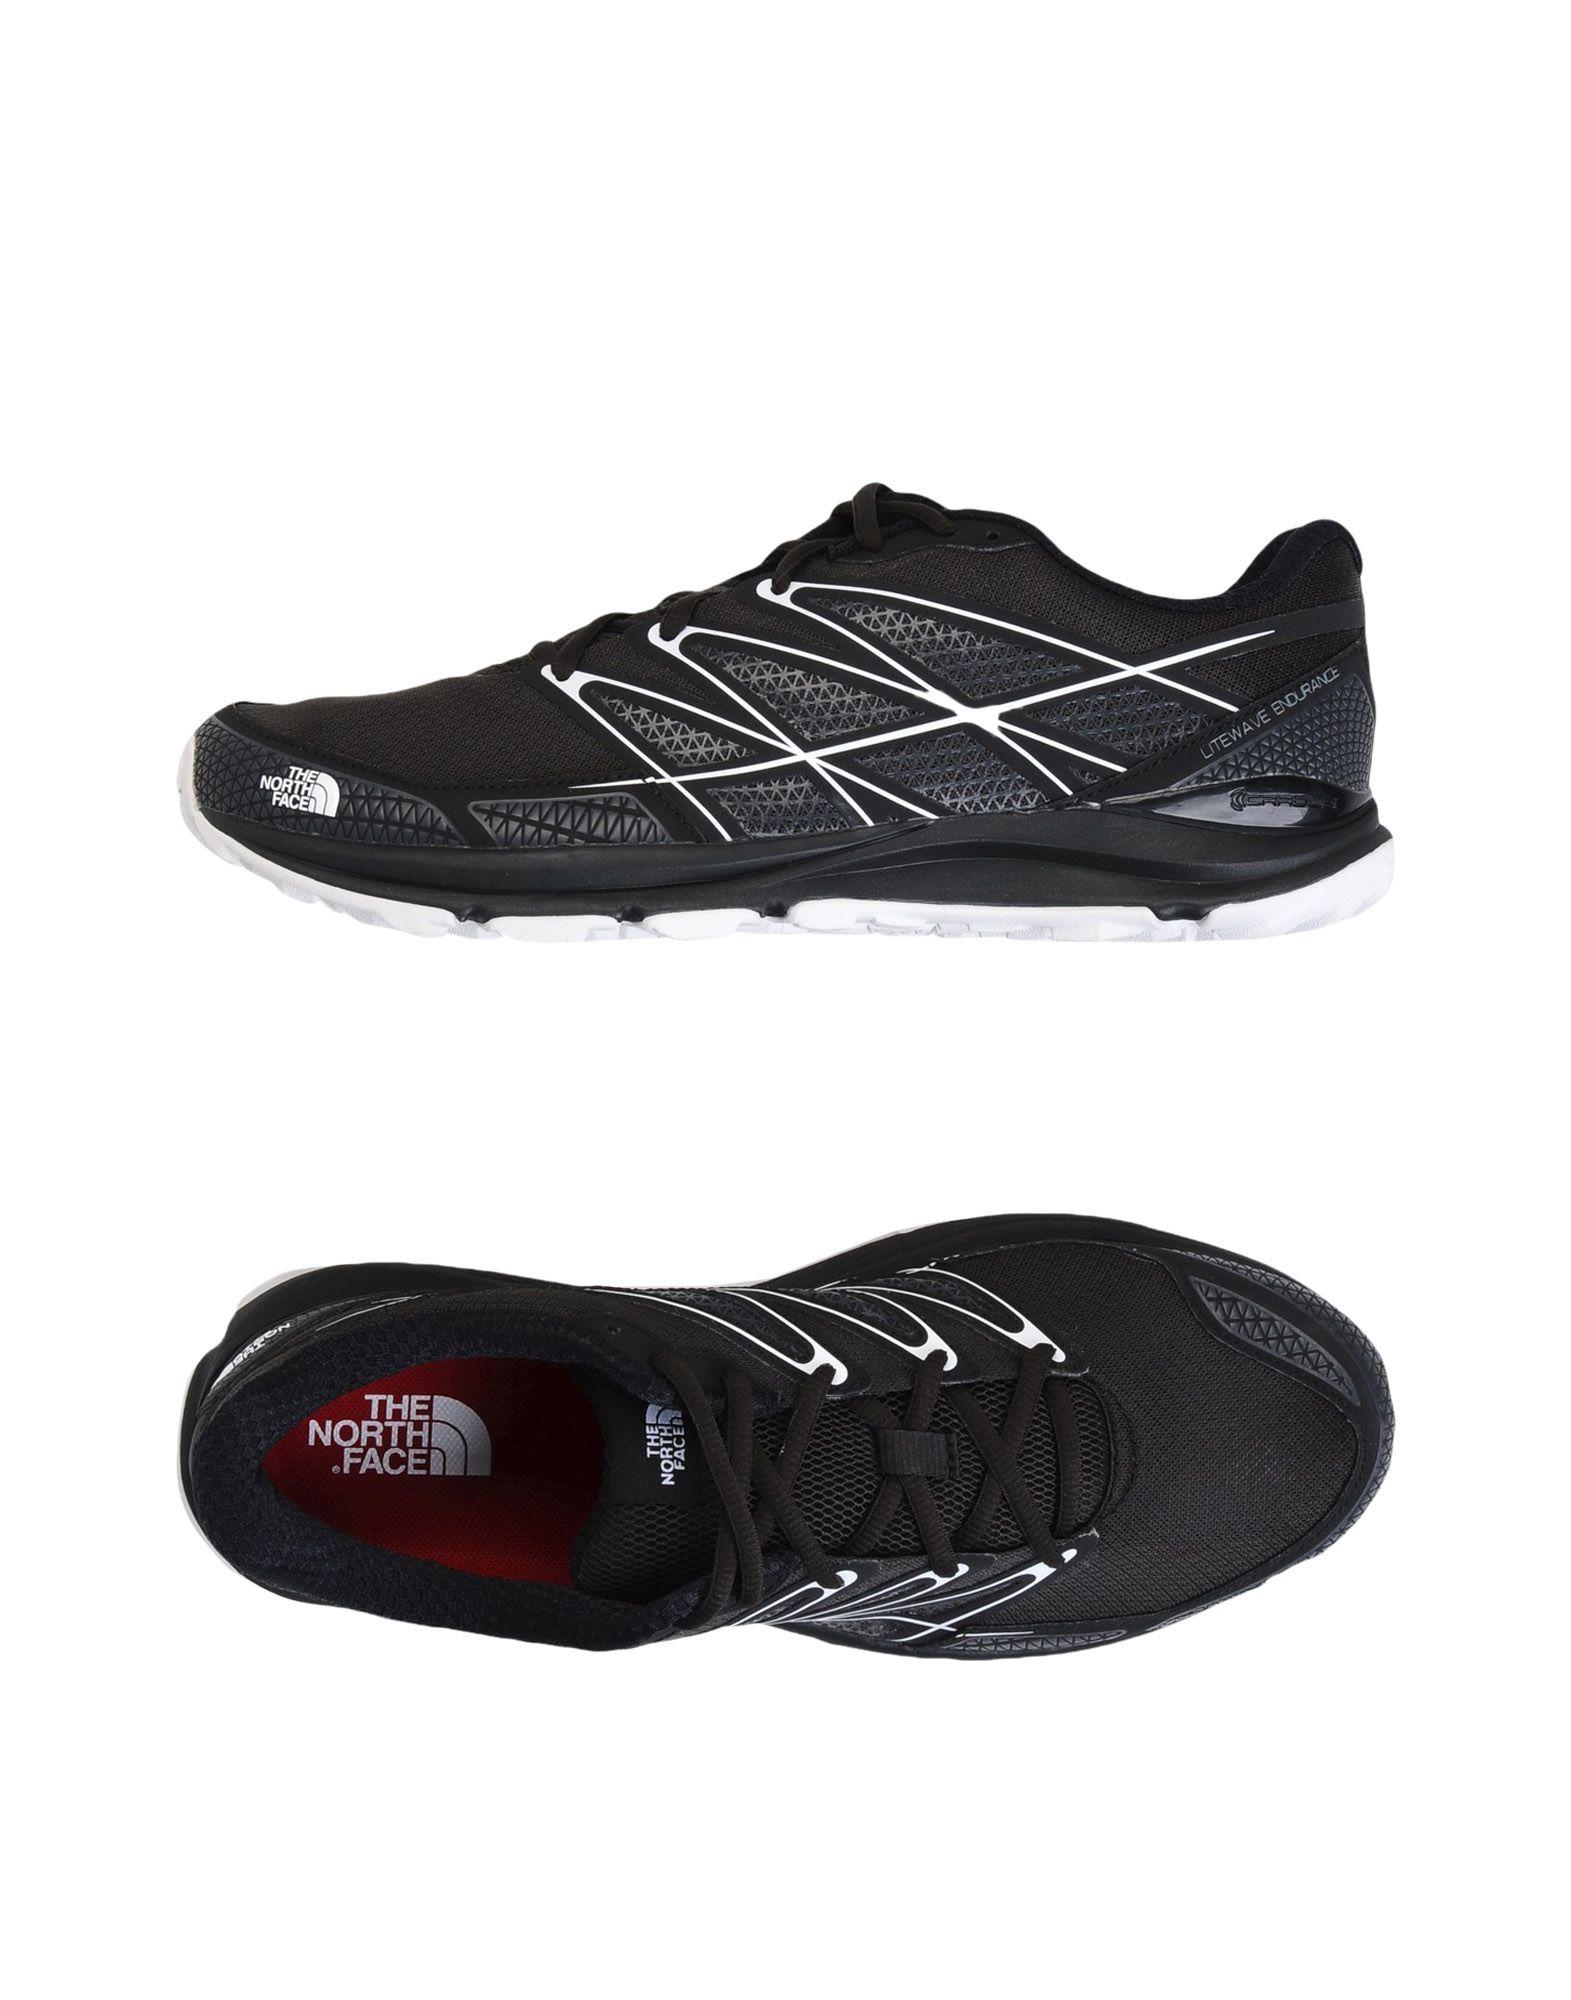 Sneakers The North Face M Litewave Endurance Tnfblack/Tnfwht - Uomo - 11456676UT